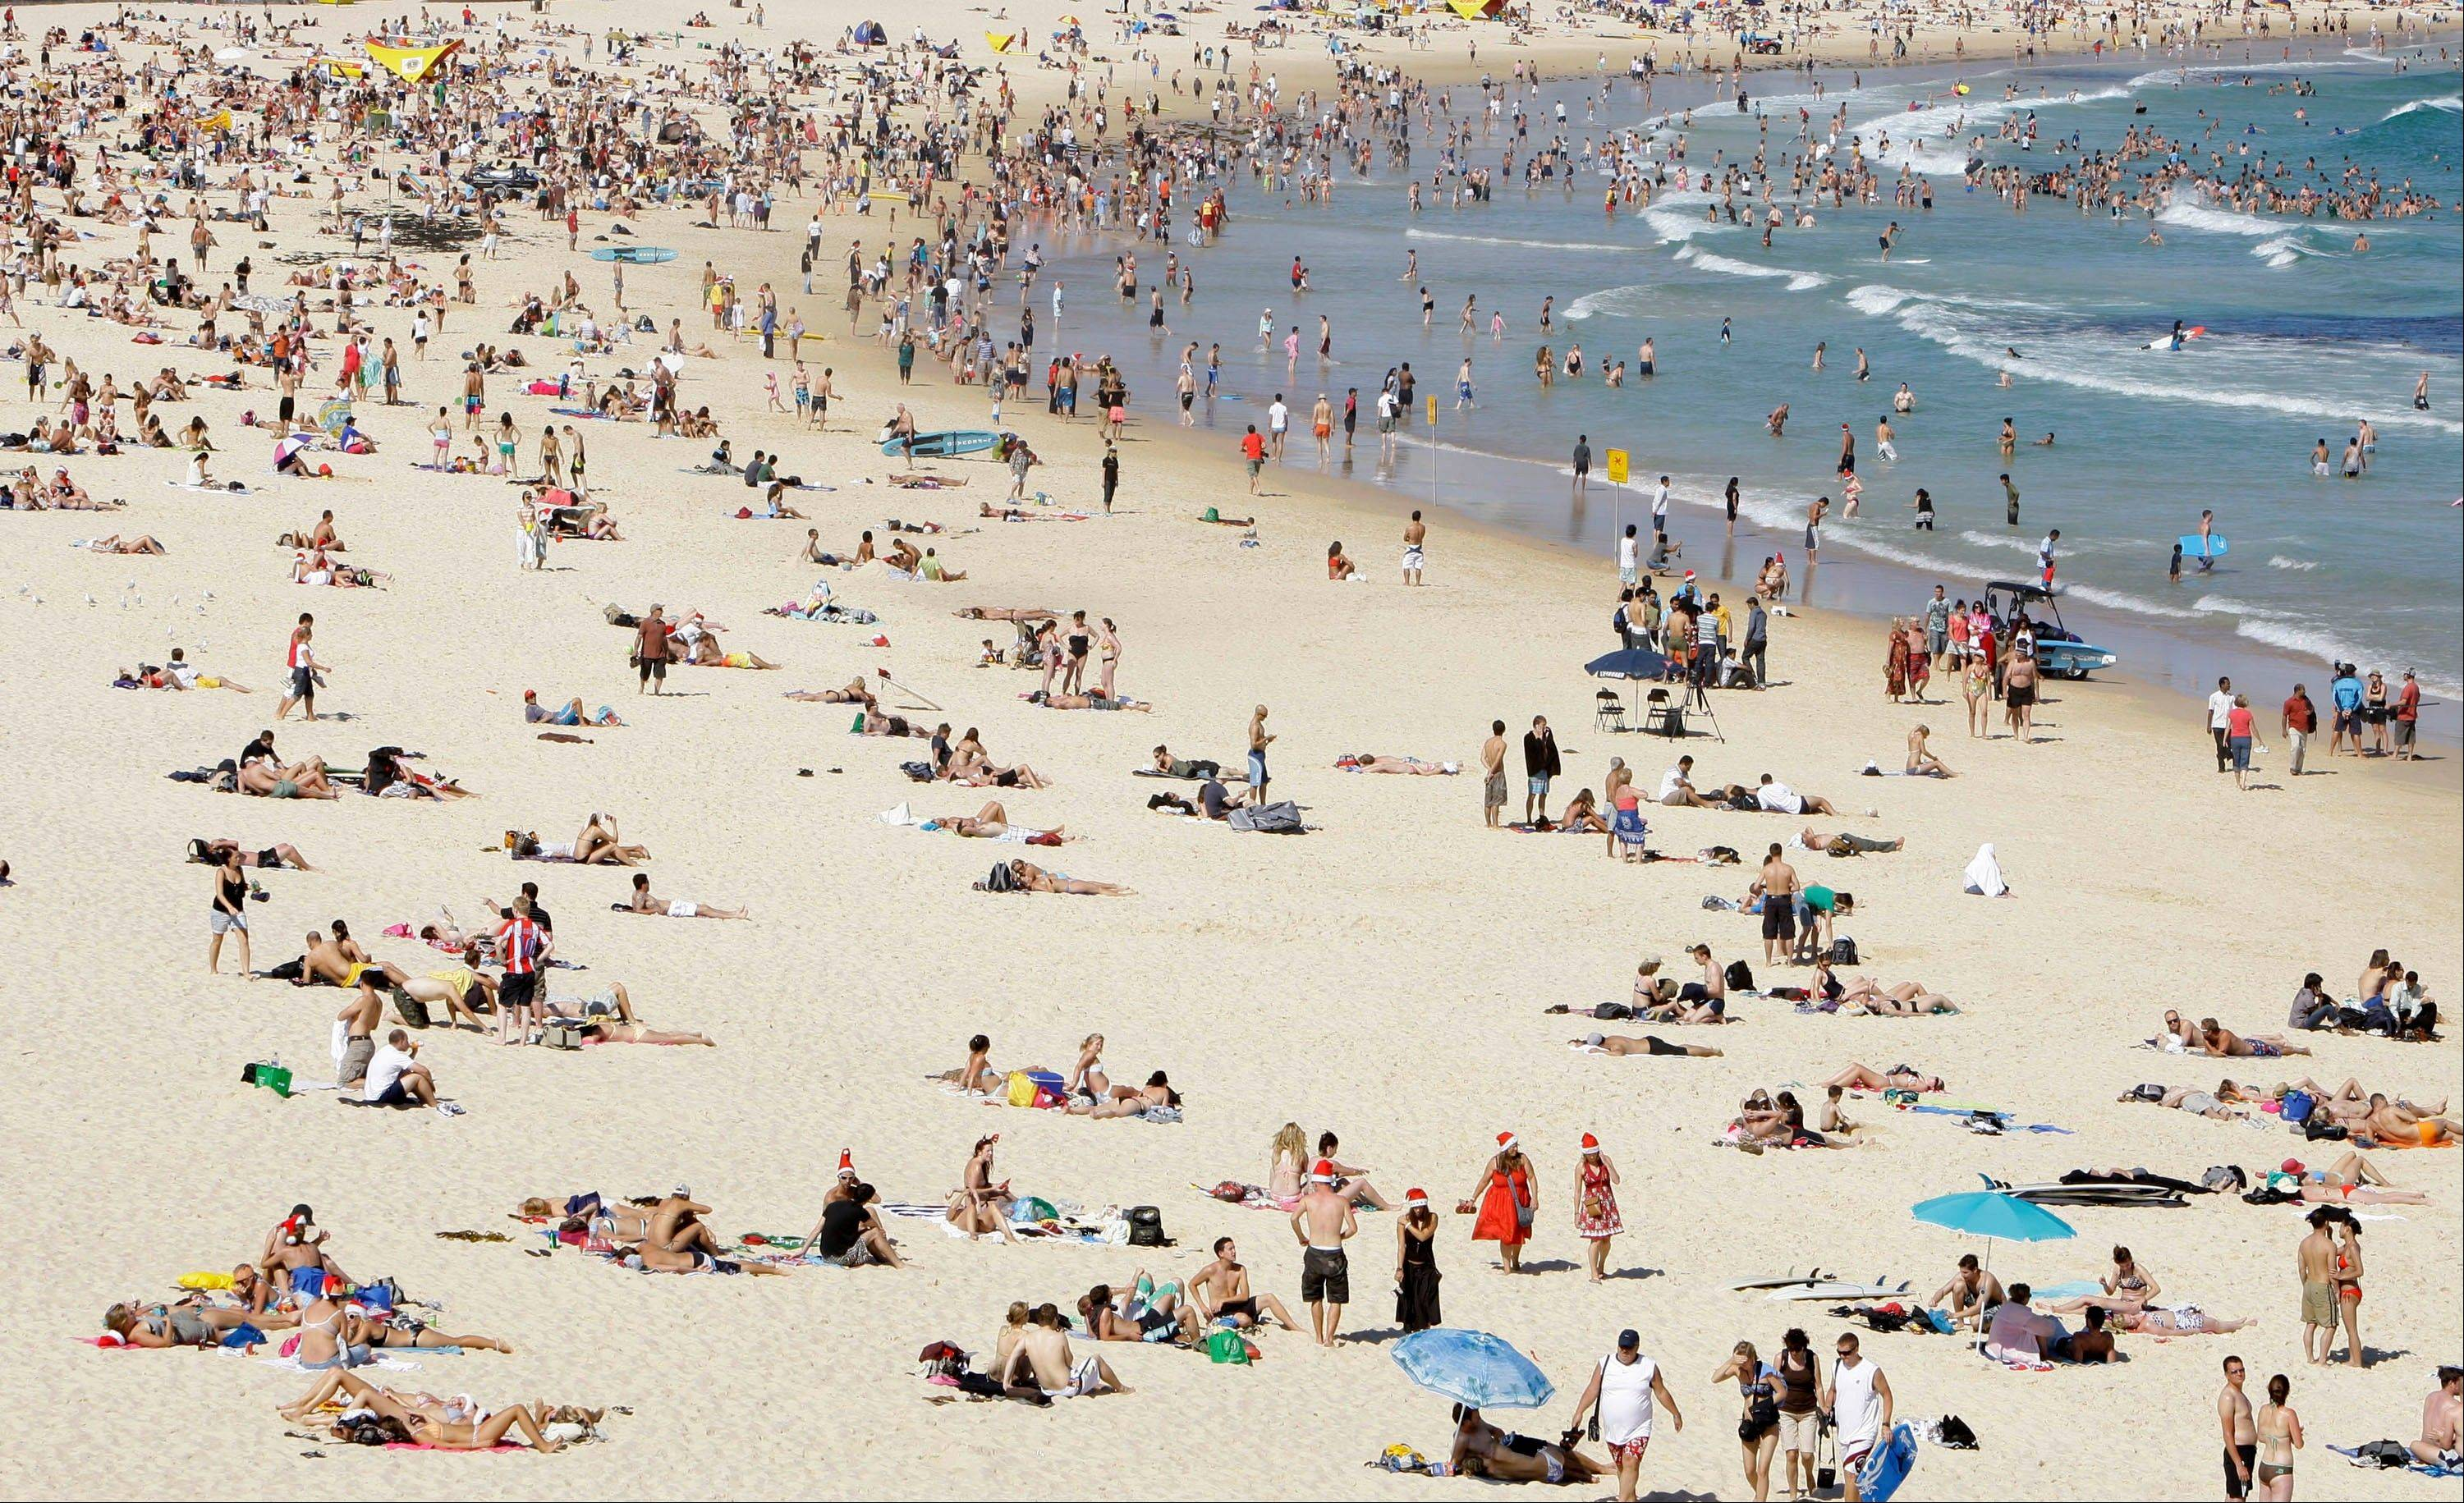 People gather on Bondi Beach in Sydney, Australia. Bondi is the best-known Sydney beach, attracting surfers, sunbathers and more than a few local eccentrics.